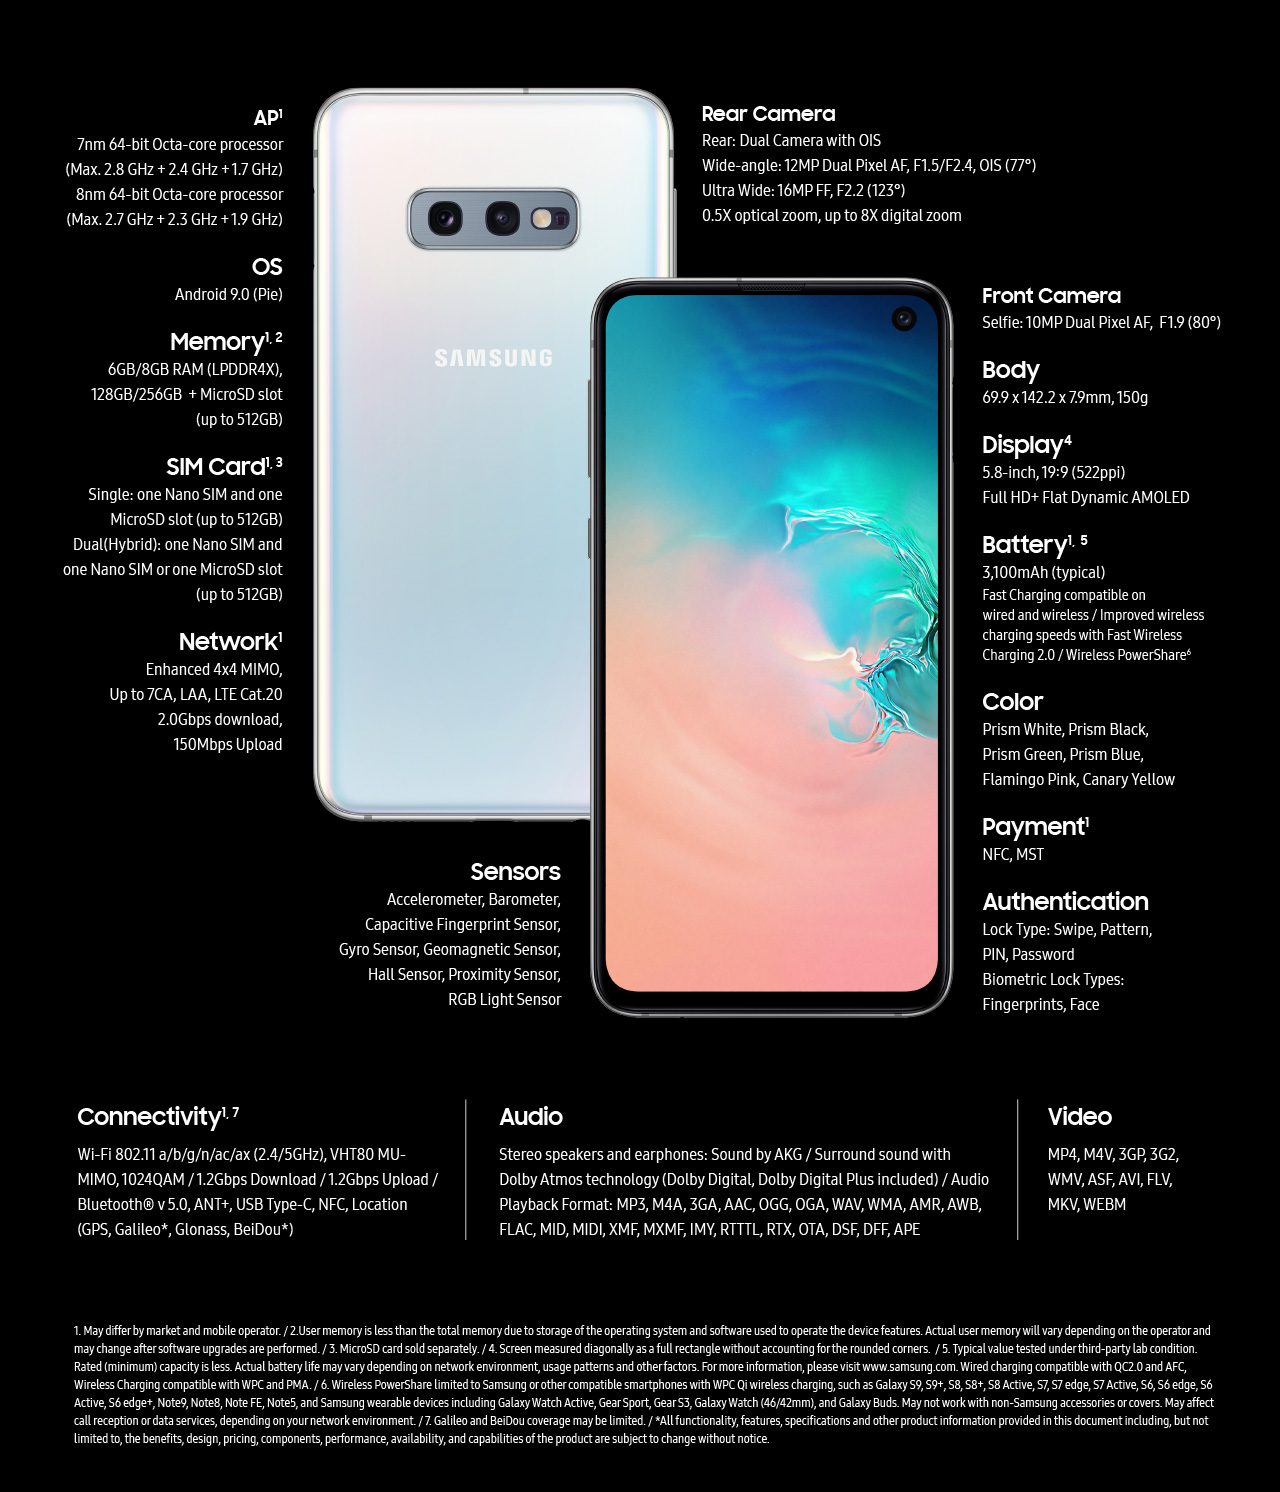 Image result for Galaxy s10e - hd images